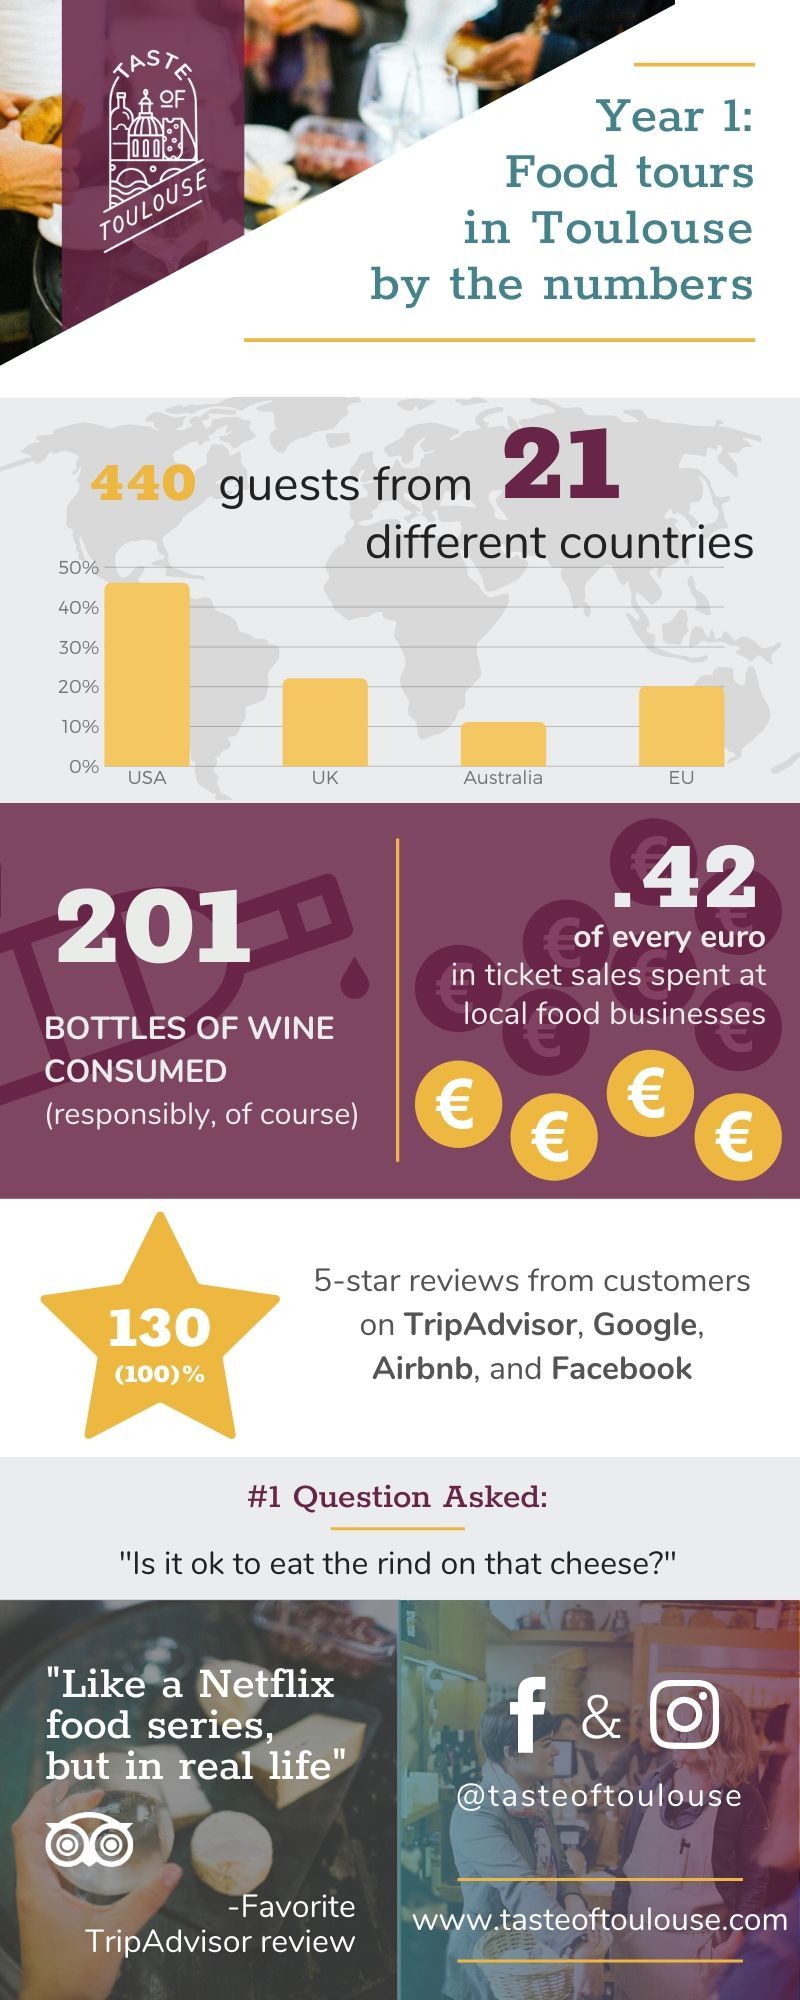 "Year 1: Food tours in Toulouse by the numbers. 440 guests from 21 different countries. 201 bottles of wine consumed. 42 cents of every euro in ticket sales spent at local food businesses. 130 5-star reviews on TripAdvisor, Google, Airbnb, and Facebook. #1 question asked: ""Is it ok to eat the rind on that cheese?"" Favorite TripAdvisor review: ""Like a Netflix food series, but in real life."""